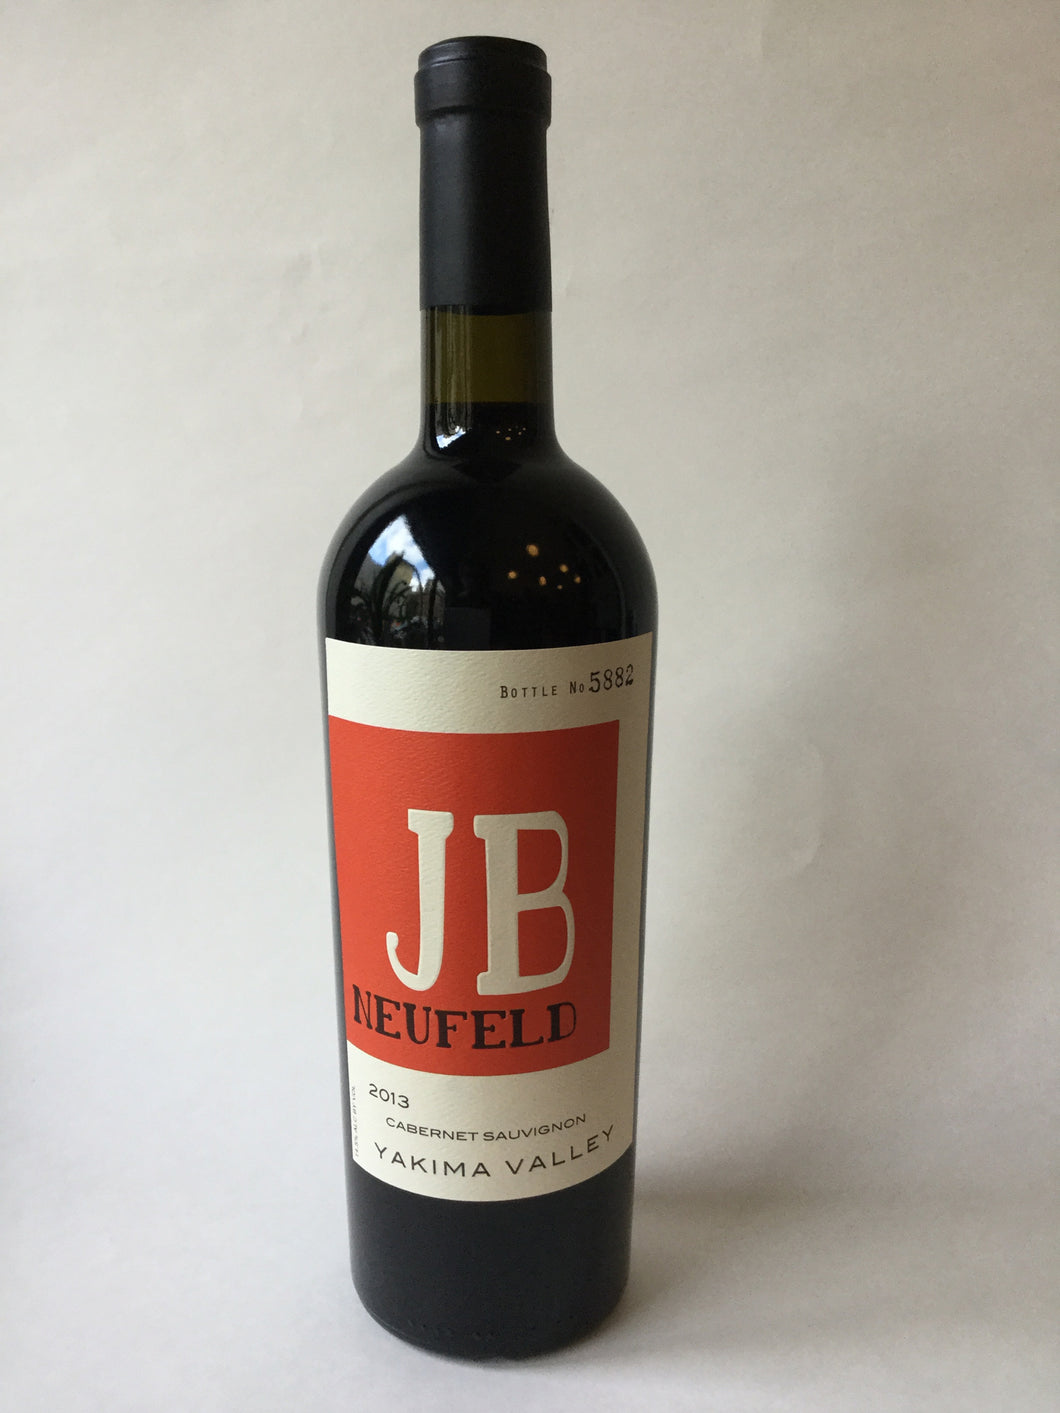 JB Neufeld Yakima Valley Cabernet Sauvignon 2014, 750ml - Frankly Wines